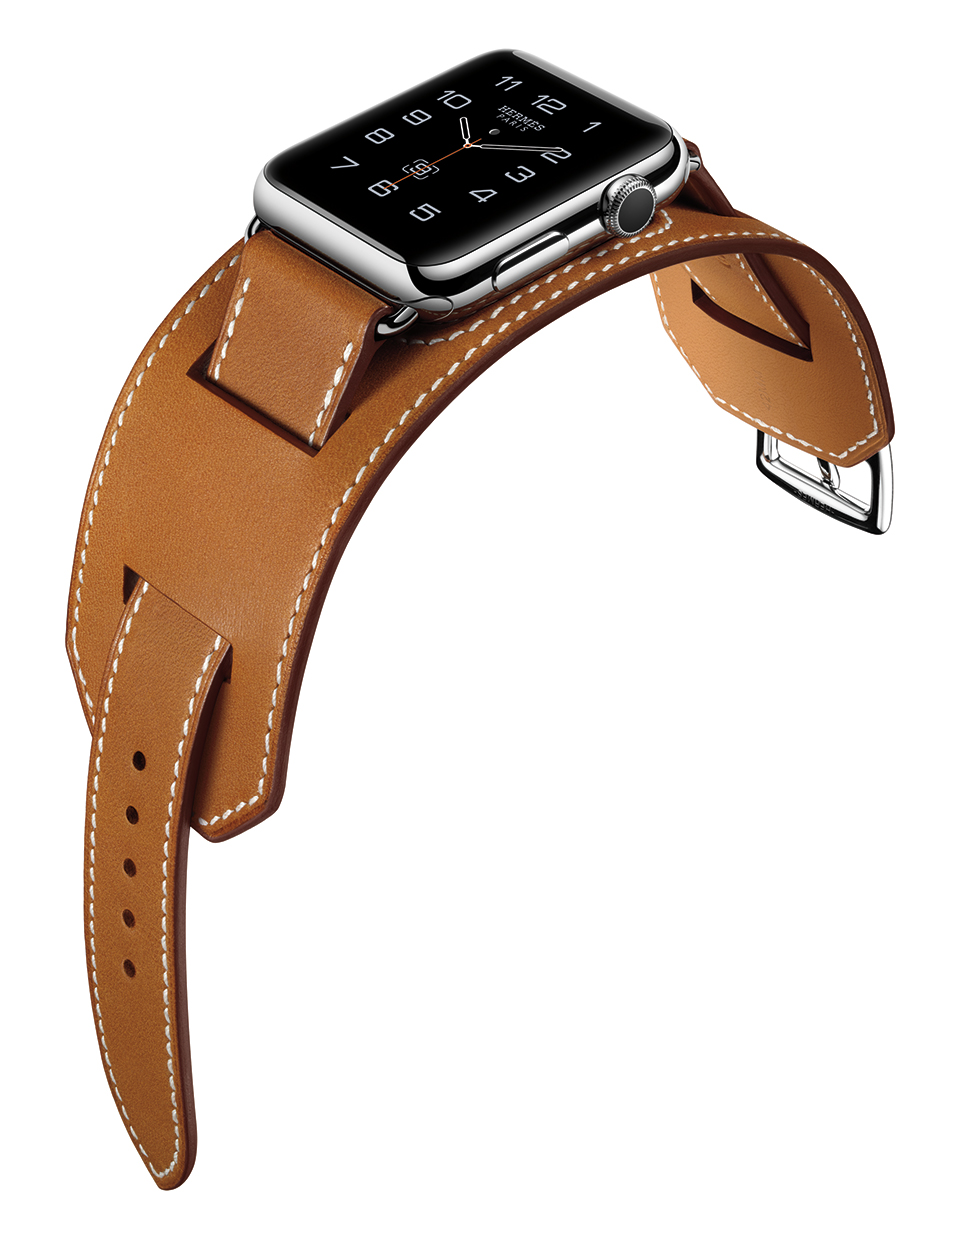 apple-apple-watch-hermès-collaboration-culture and life-03